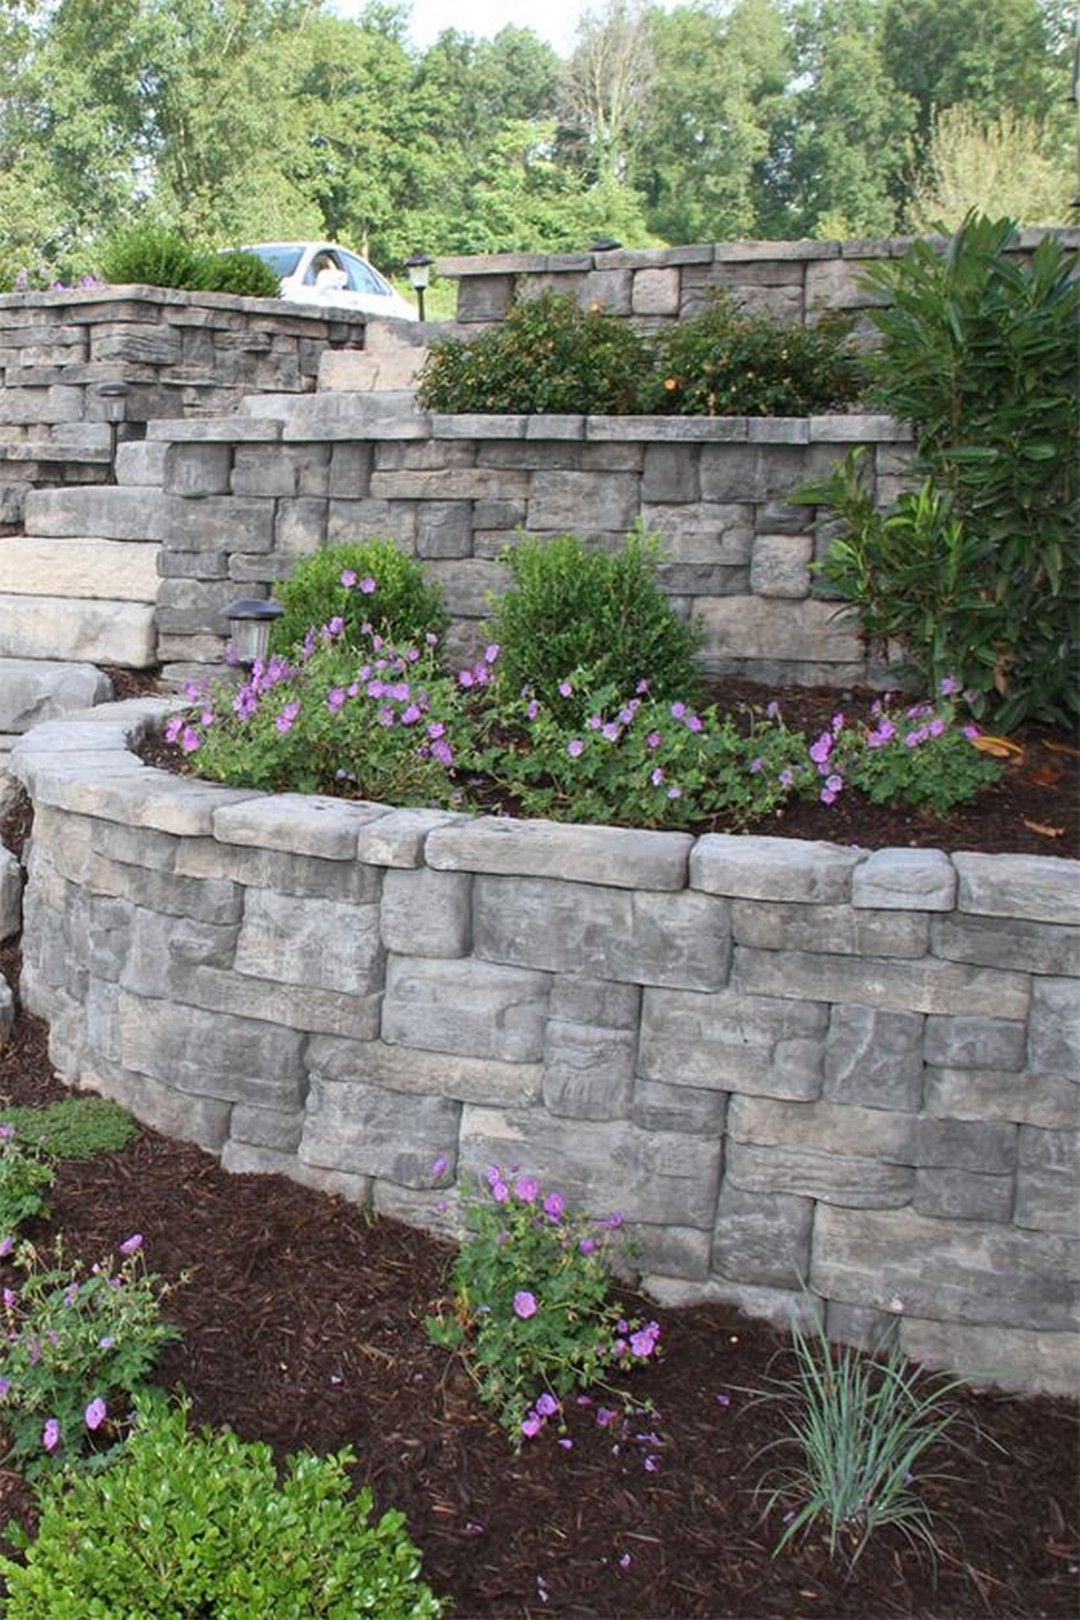 Incredible Small Backyard Ideas on a Budget That Are Very ...